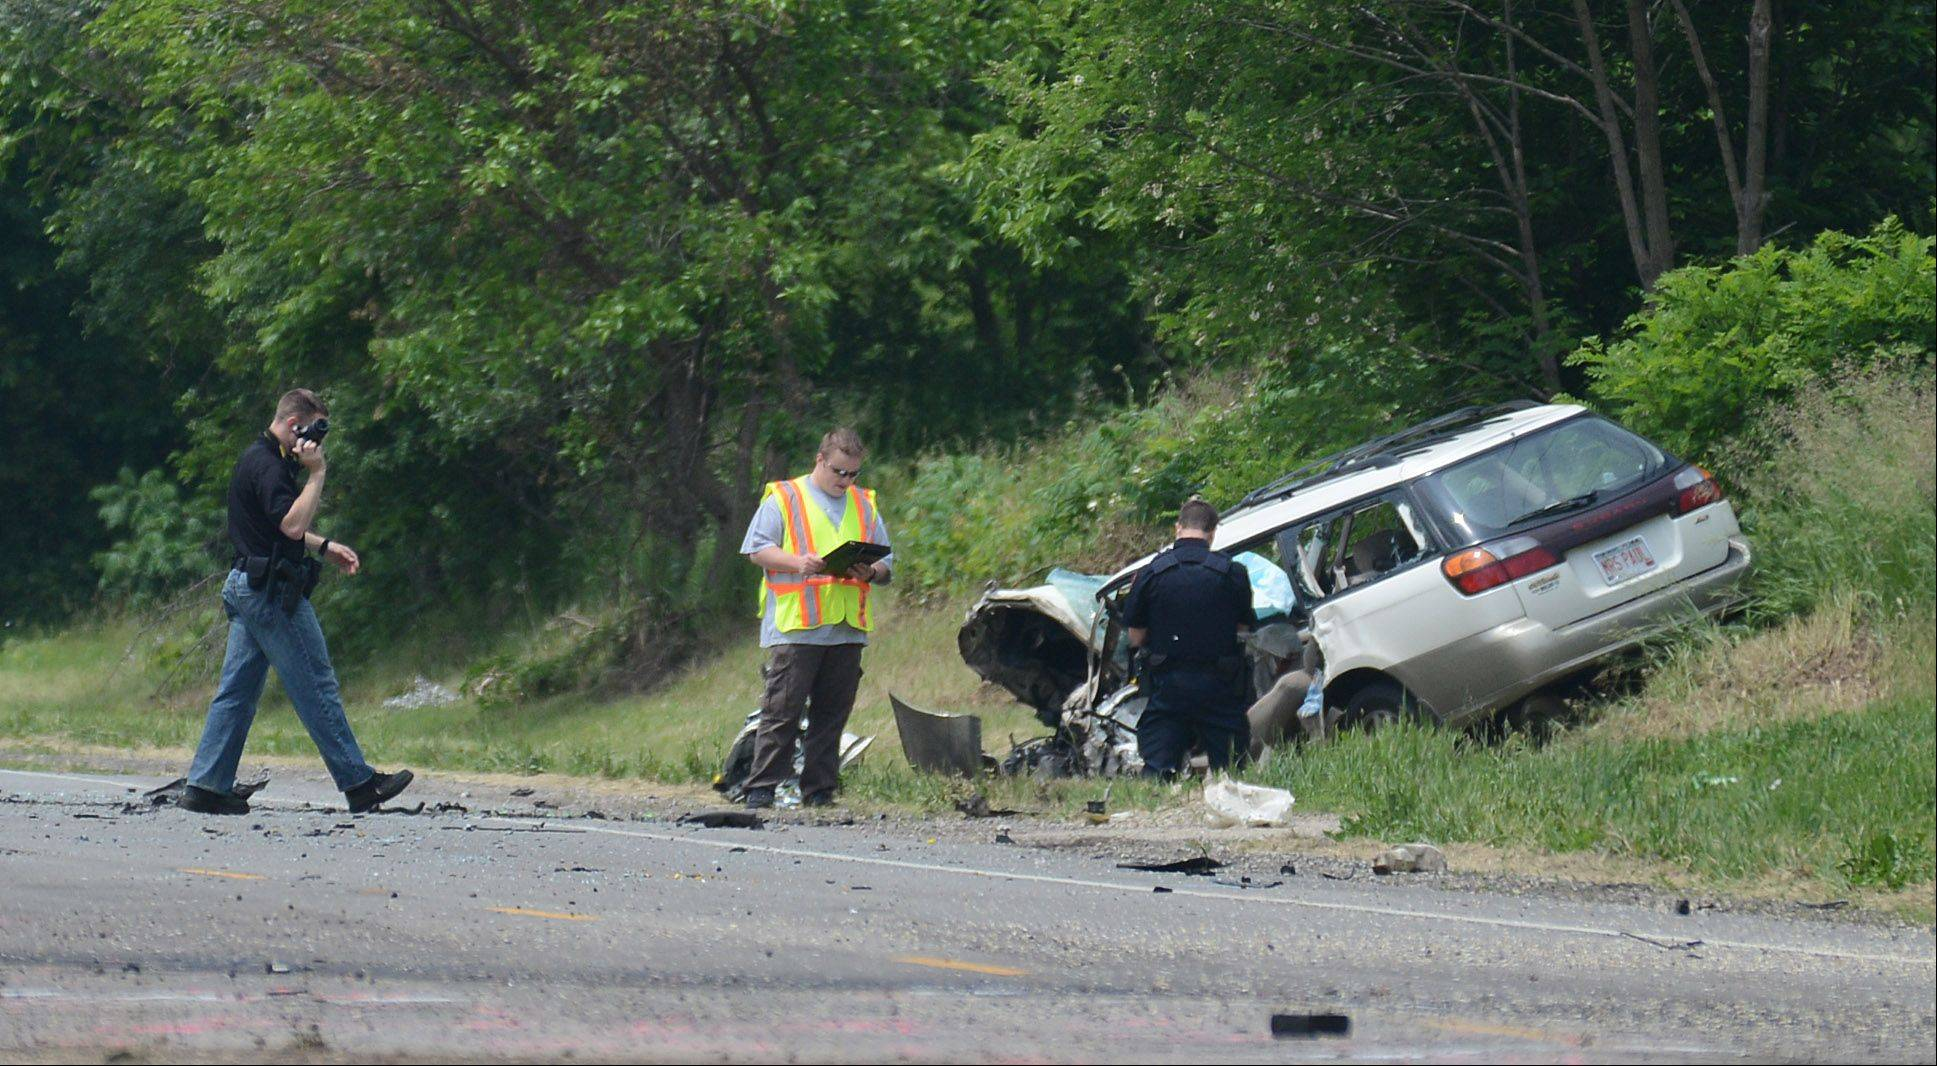 Officials check over the car that was involved in a fatal crash Monday on Route 173, in an unincorporated area near Fox Lake.